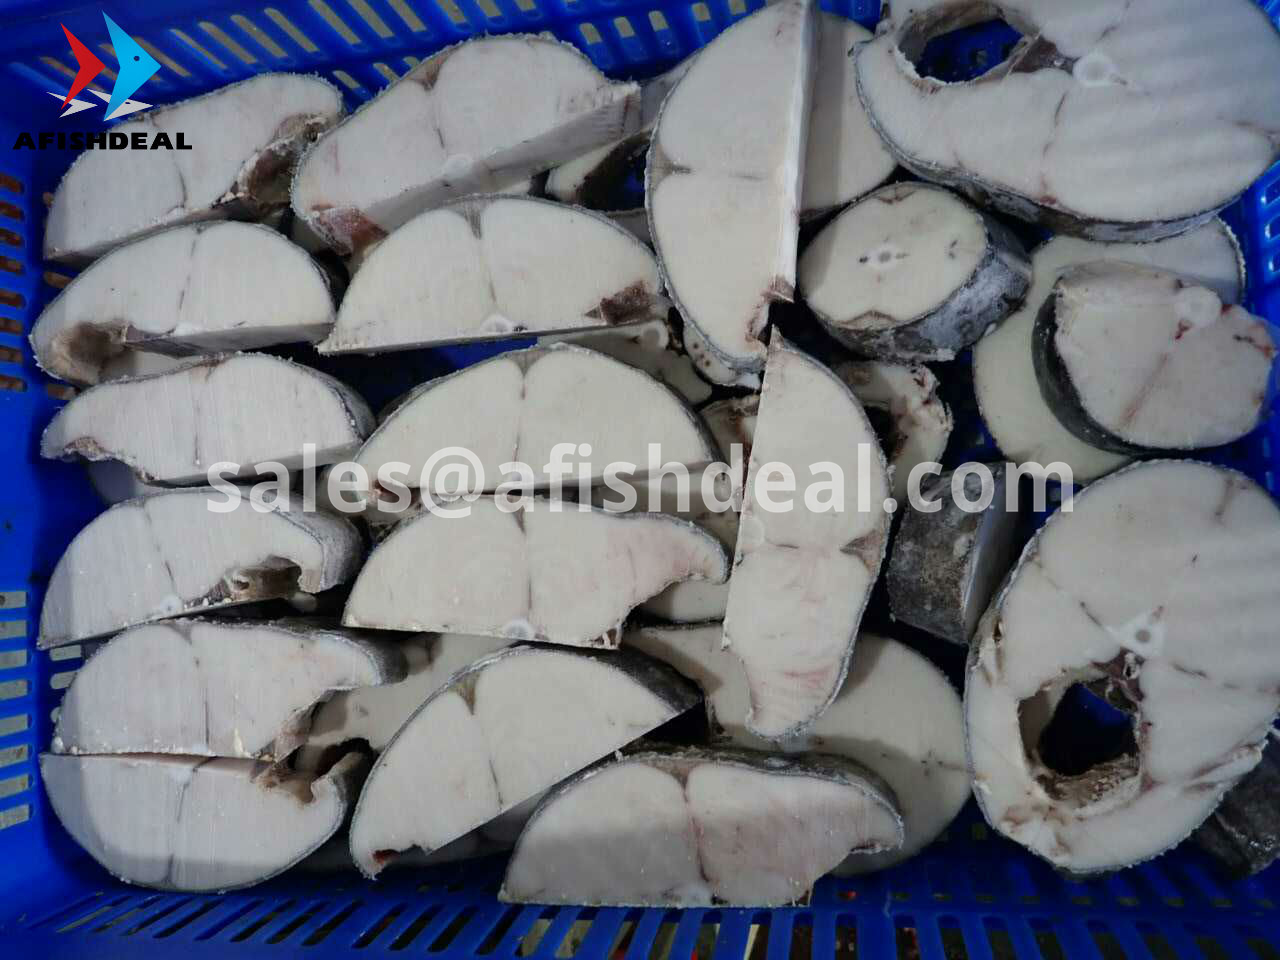 OILFISH - ANCHOVY - PARROT FISH - WAHOO - GROUPER - WHOLE ROUND FROZEN - GUTTED - FILLET - STEAK